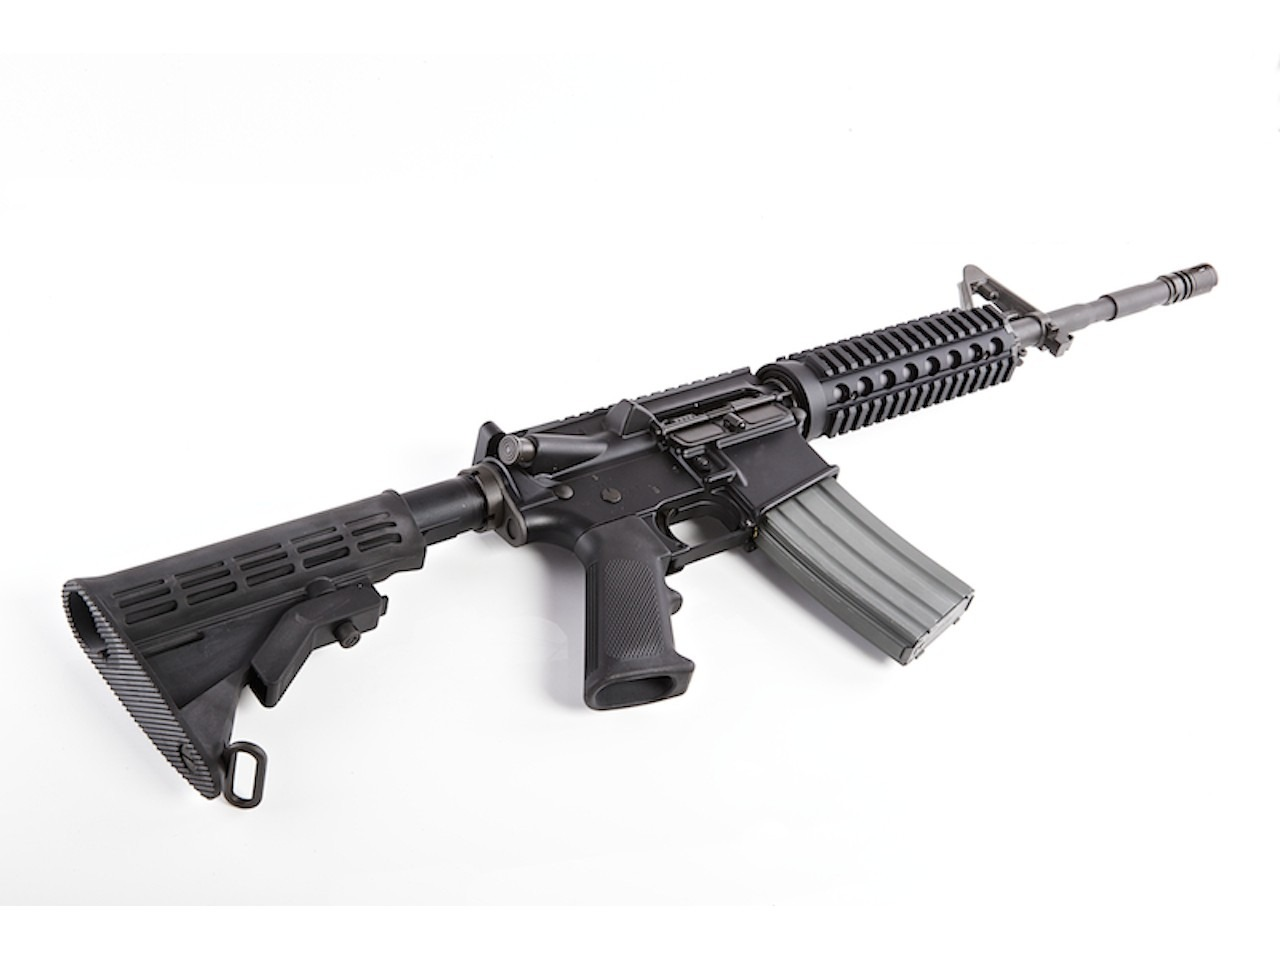 5 Most Realistic Airsoft Guns #8211; How Are They Legal? 1830892488